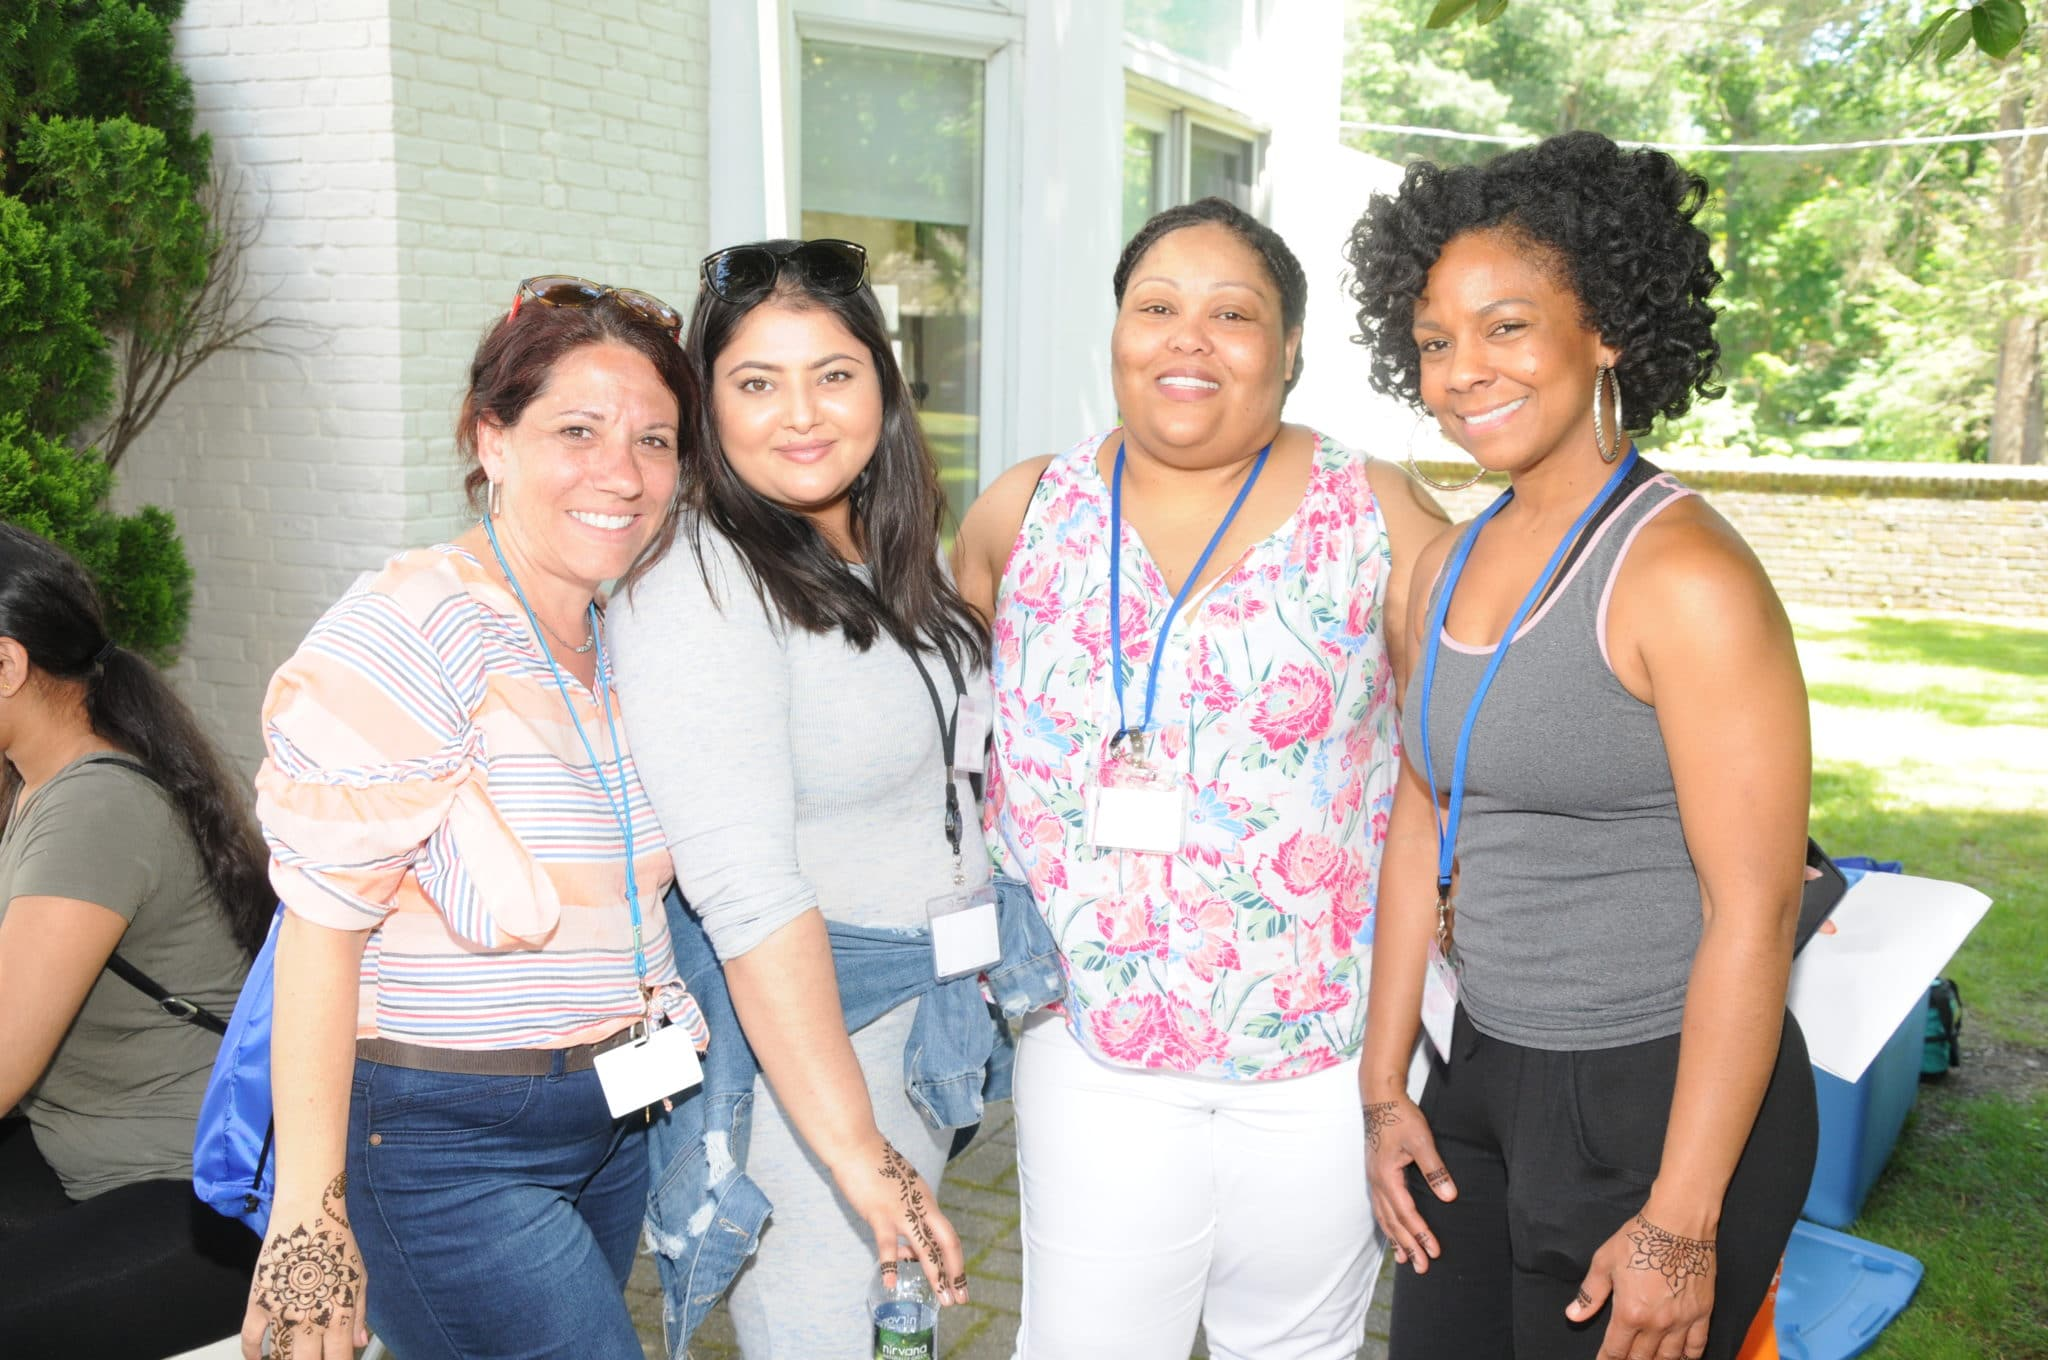 HR team celebrates at Diversity Committee hosted picnic